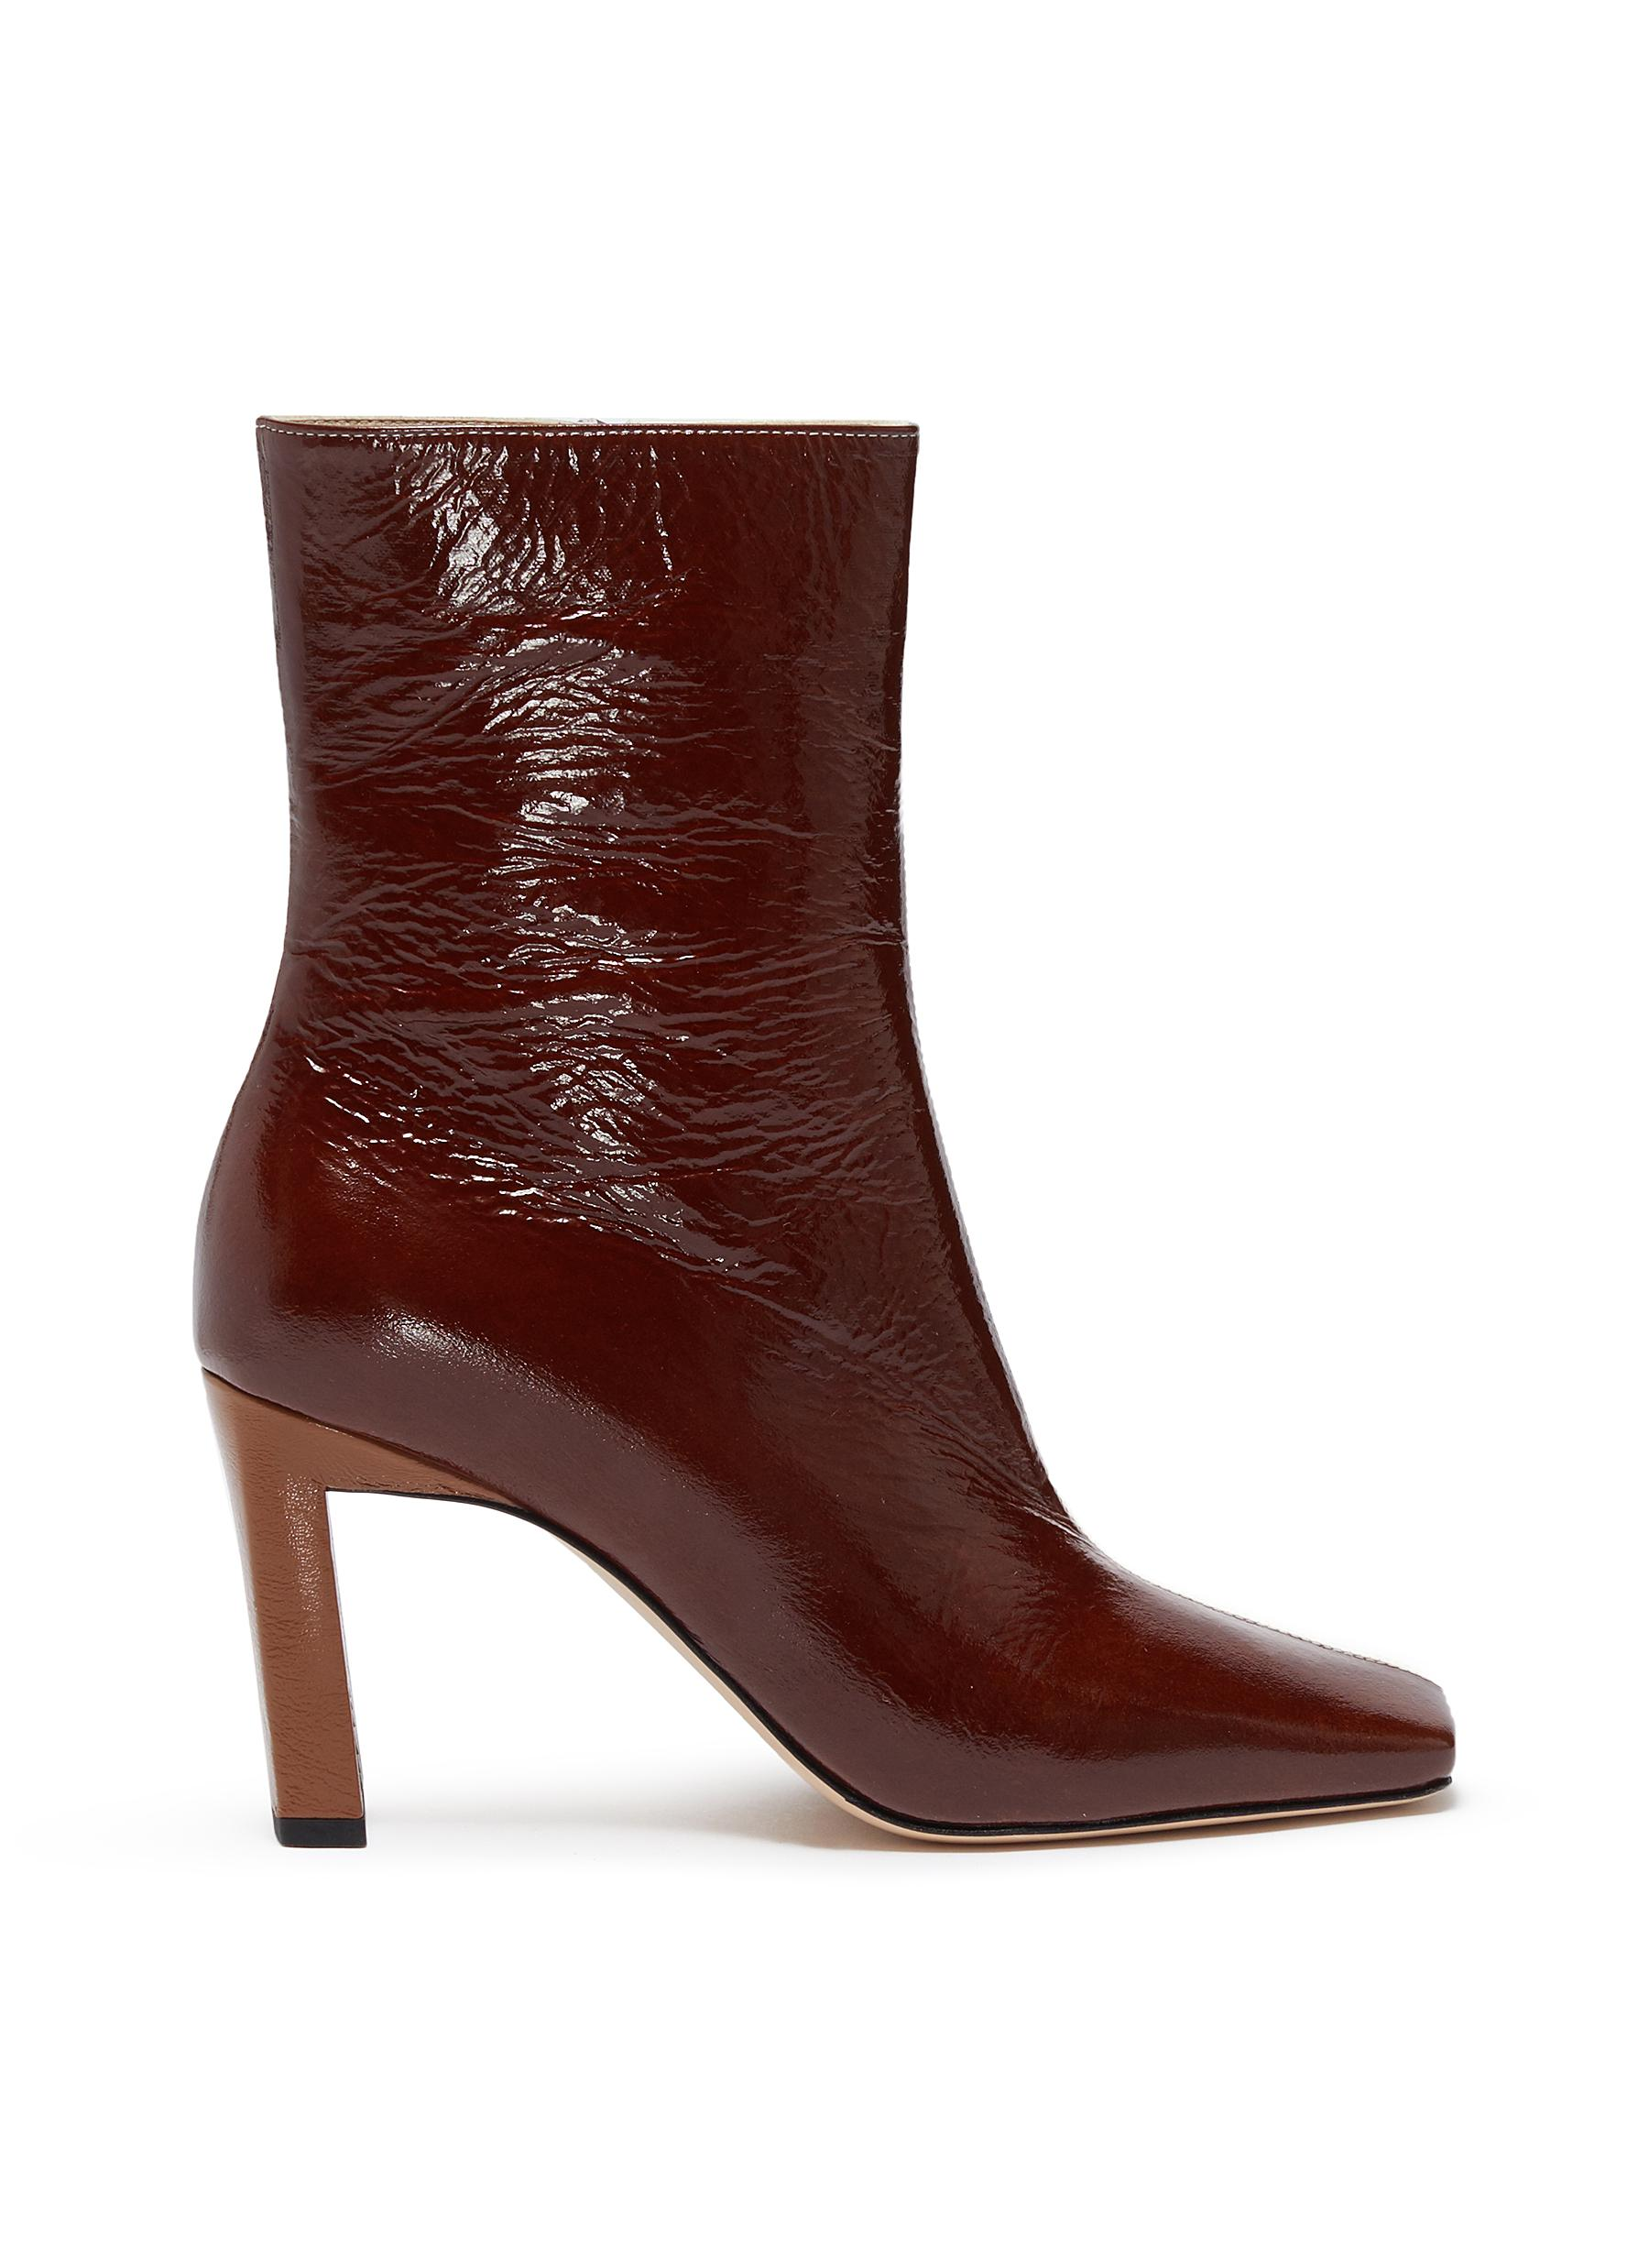 Wandler Boots 'Isa' square toe contrast panel patent leather boots